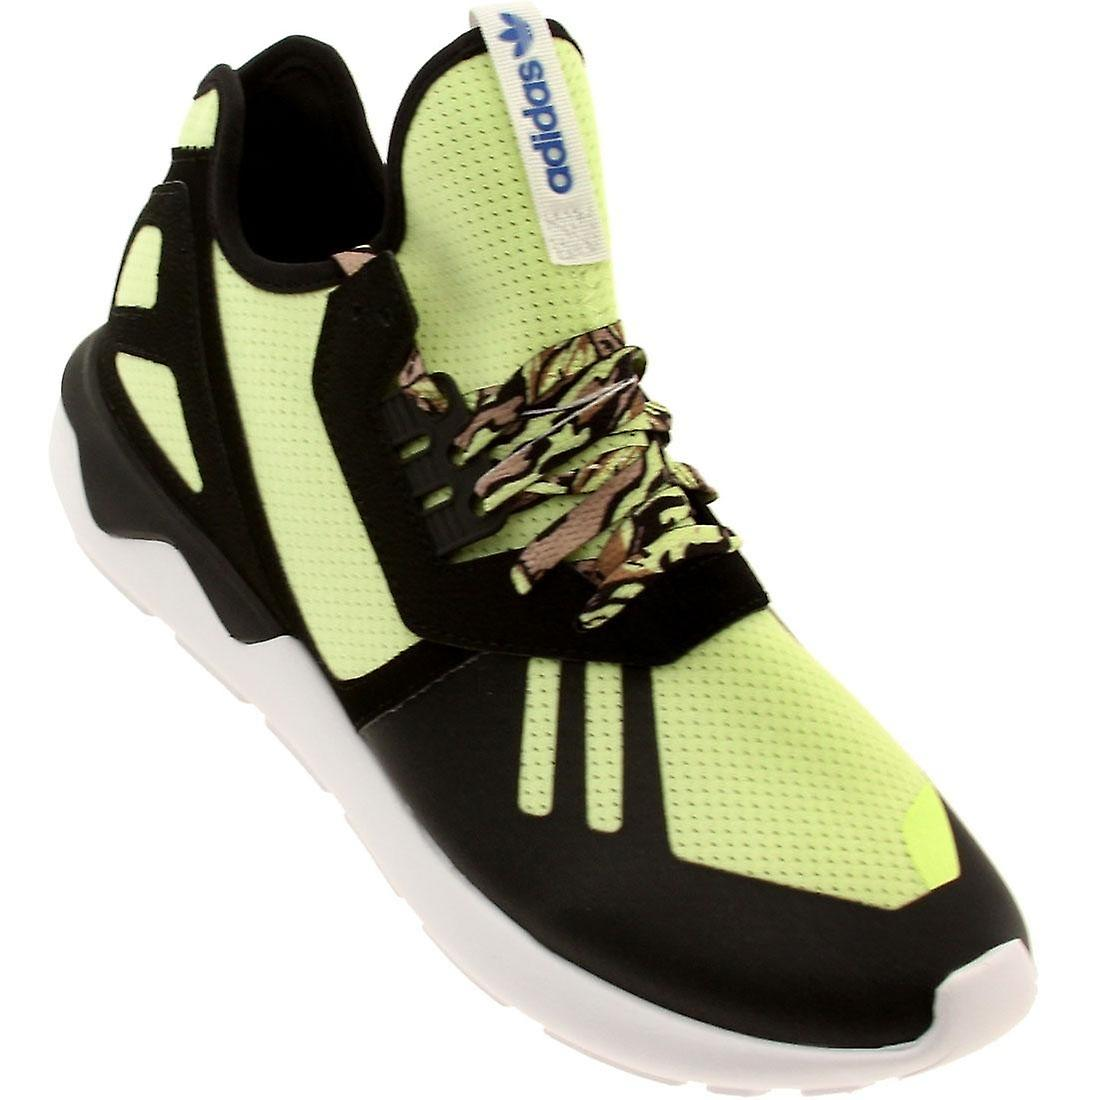 adidas tubular runner mens trainers shoes black and